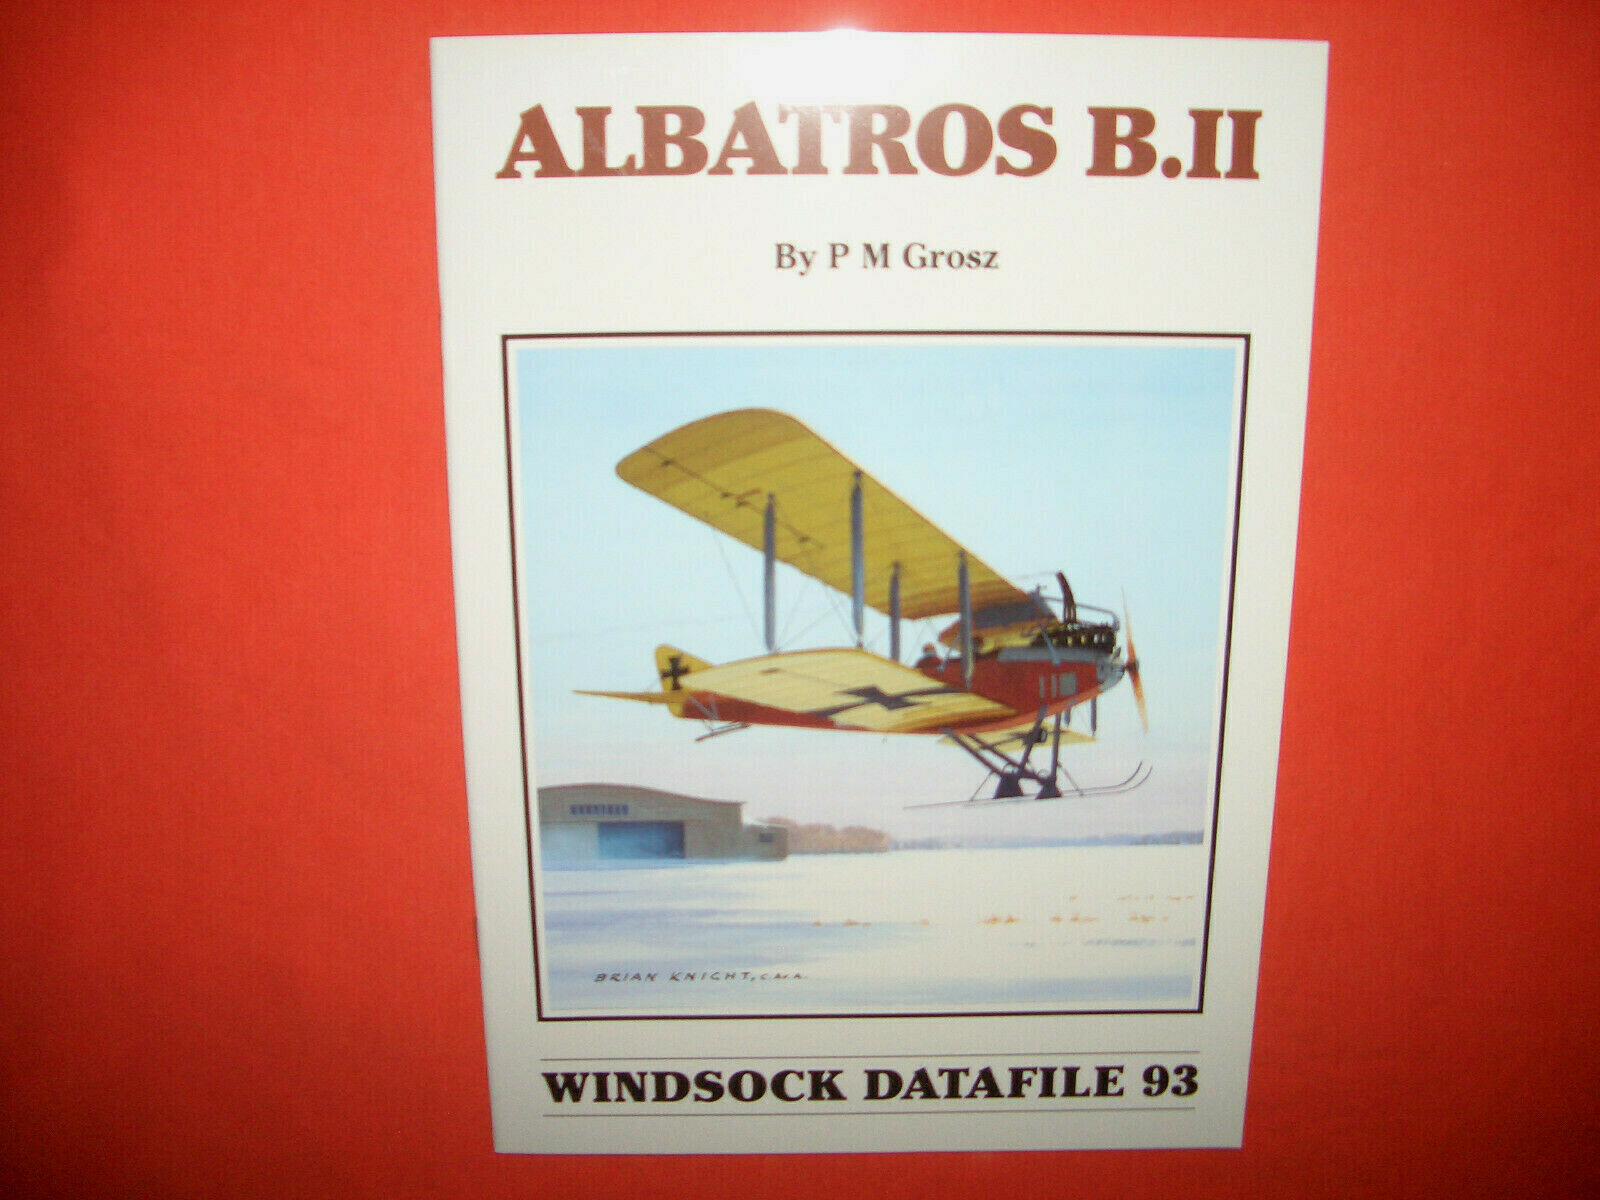 Windsock Datafile 93, ALBATROS B.II